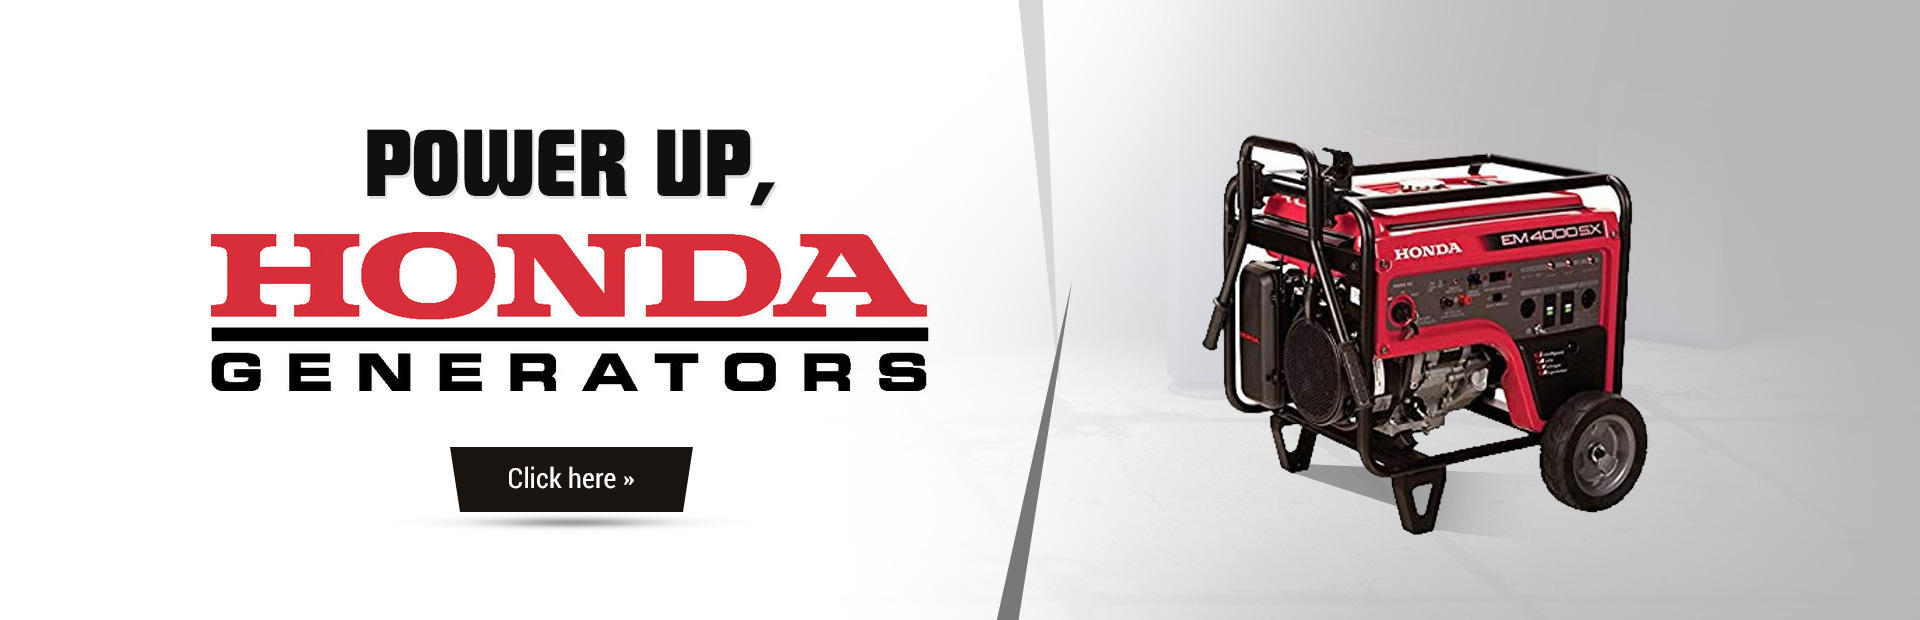 Honda Generators: Click here to see the models.